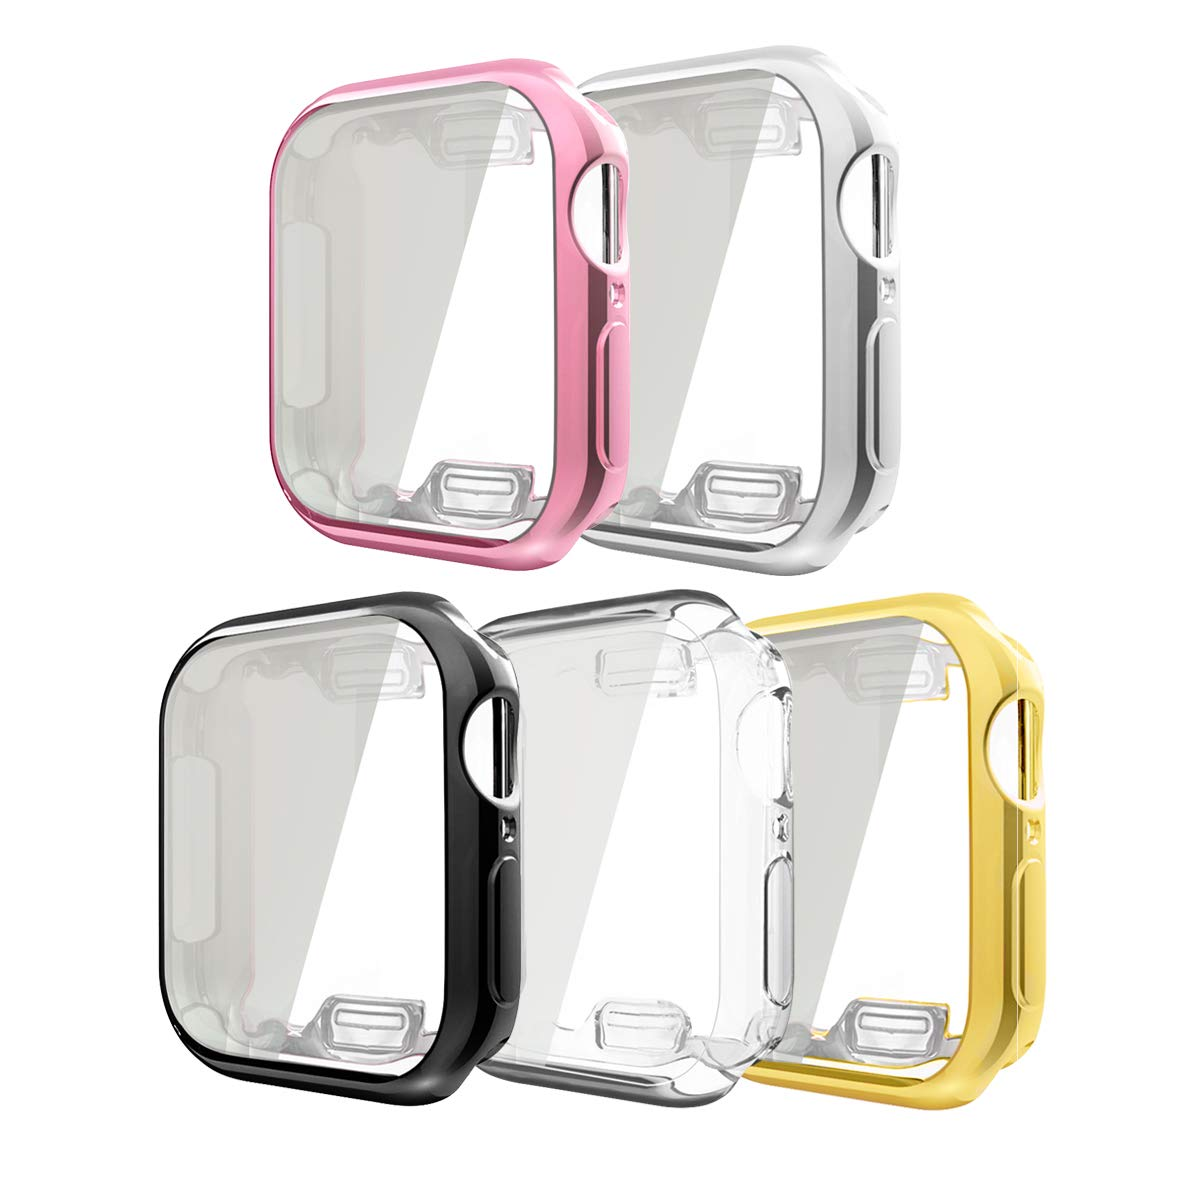 Compatible with Apple Watch 4 Case with Buit in TPU Screen Protector Series 4 44mm, 5 Pack All Around Protective Case Ultra-Thin Cover Compatible for Apple iwatch Series 4 44mm (5 Pack, 44mm)